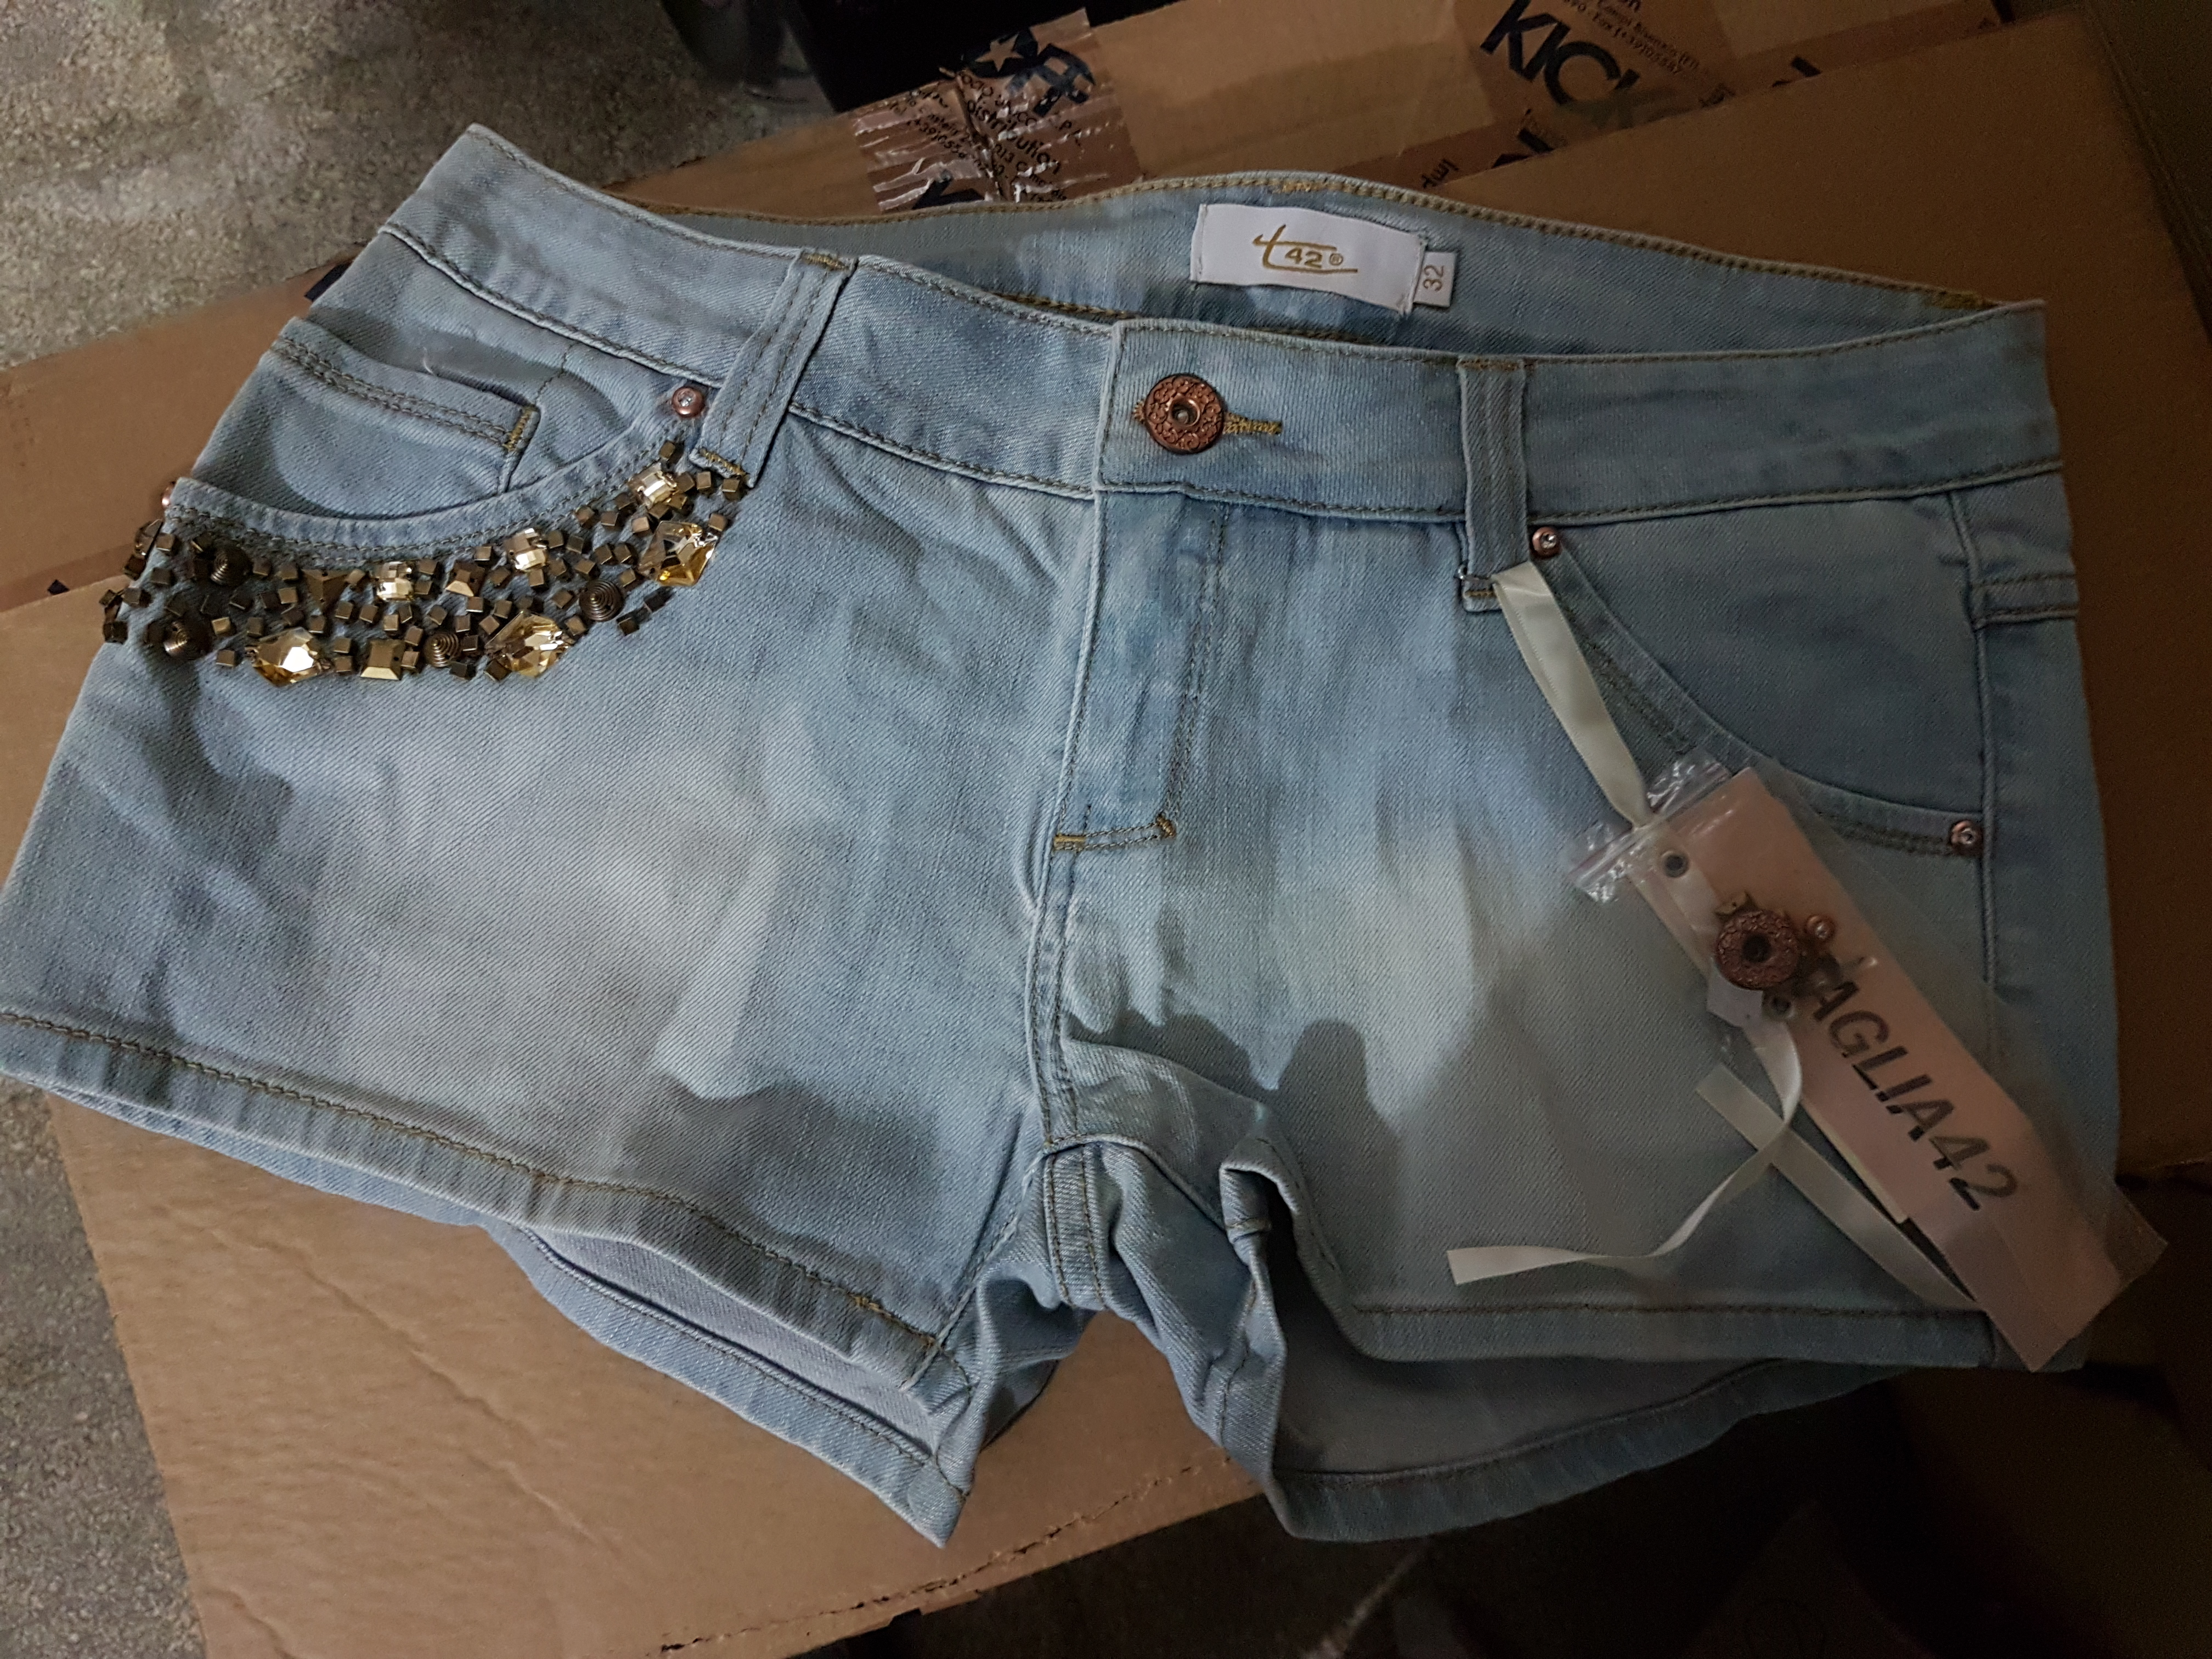 N.° 5 SHORTS IN JEANS DONNA ' TAGLIA 42 '